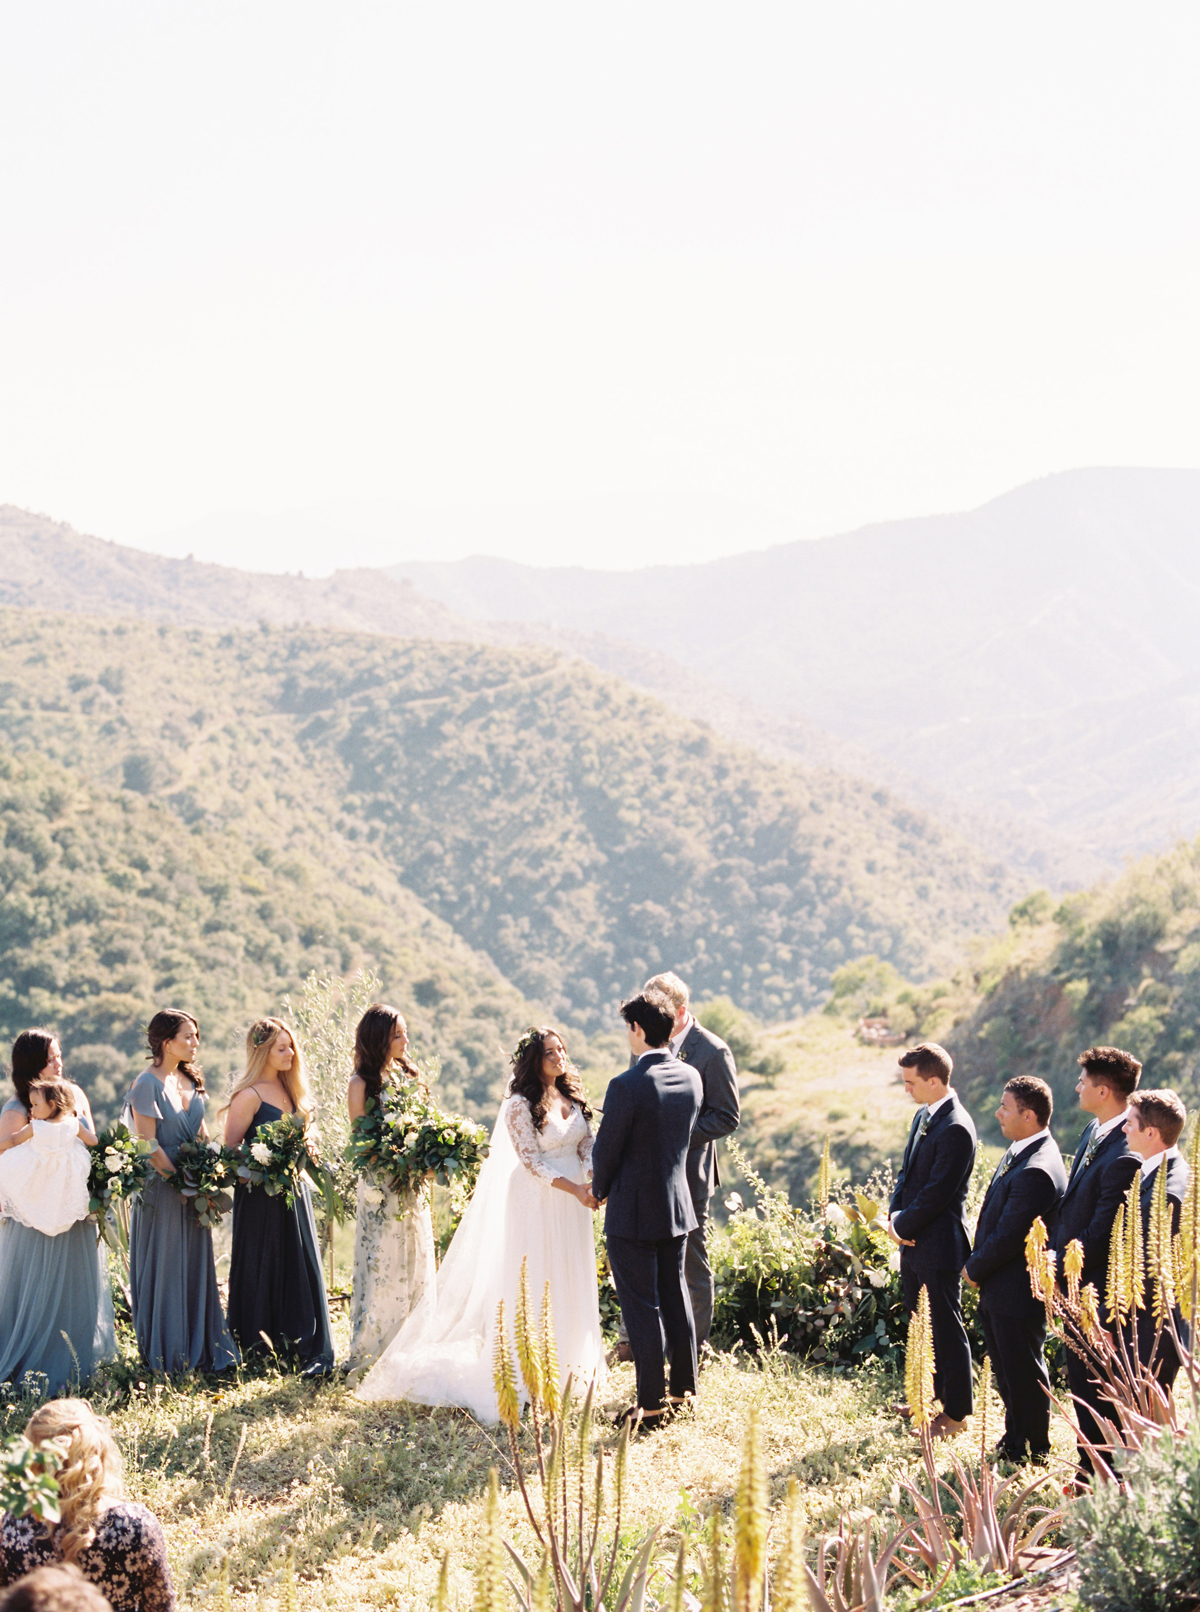 An Ethereal Destination Wedding in the Hills of Southern Spain